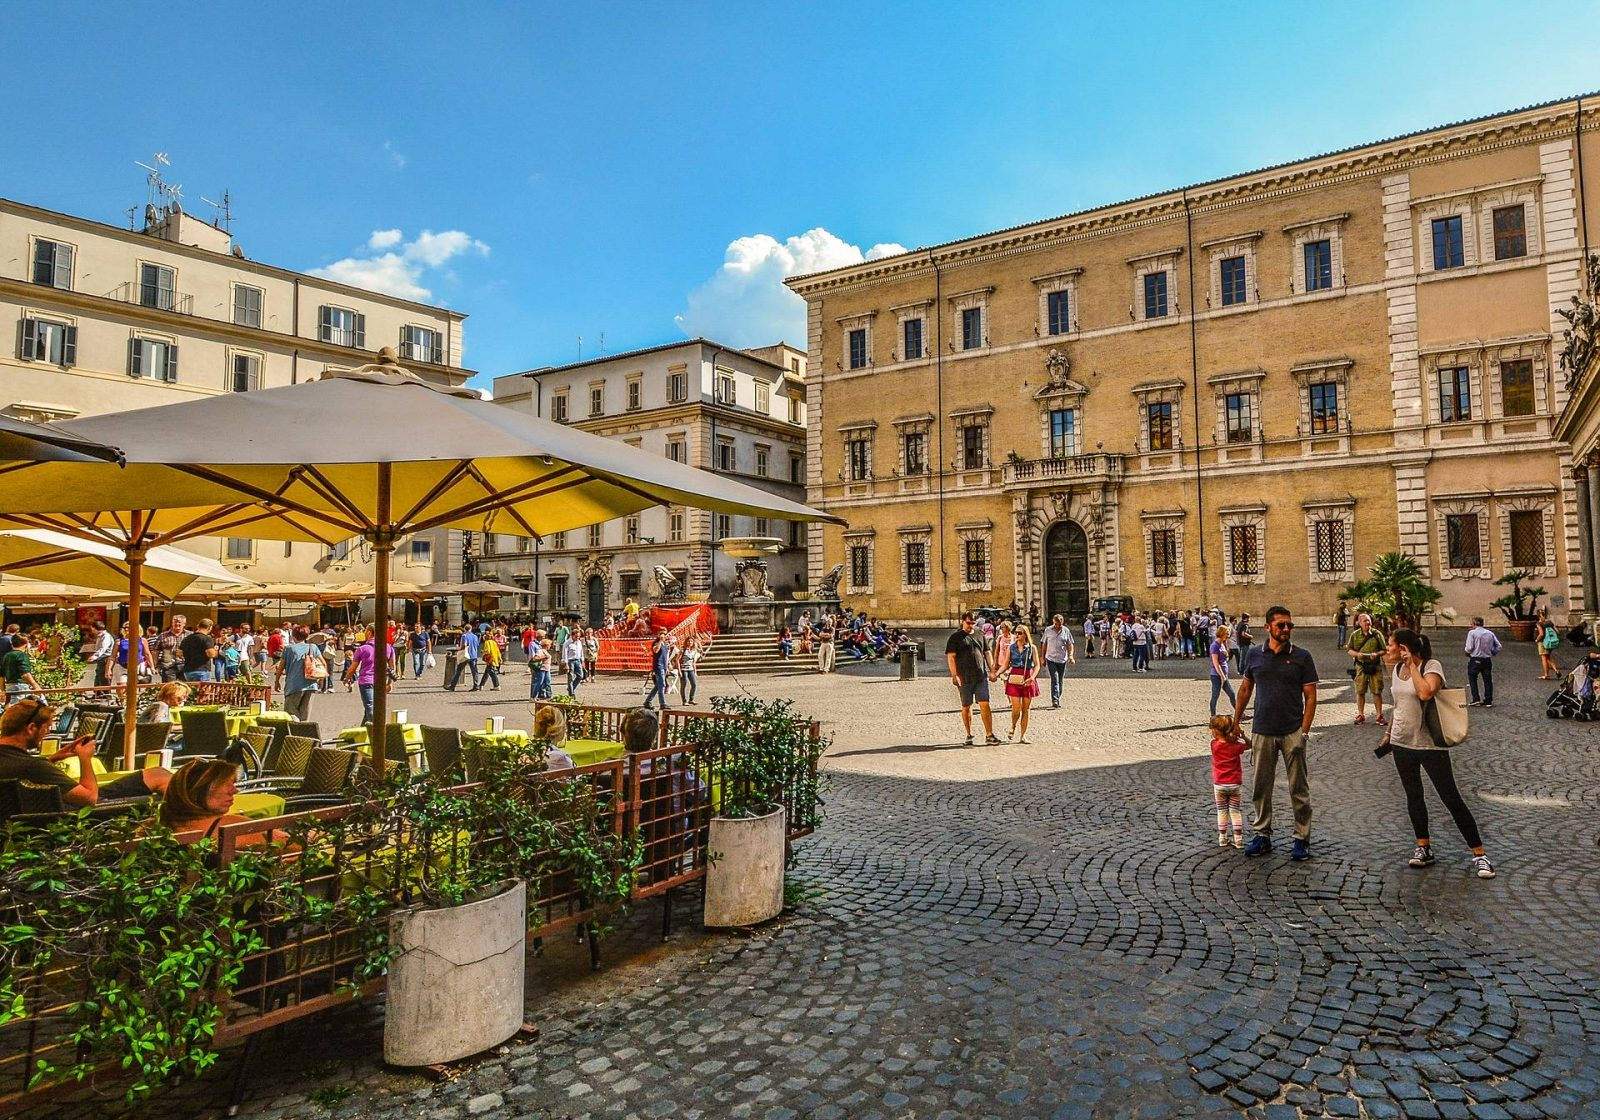 3 Awesome Travel Destinations to Take the Family in Europe